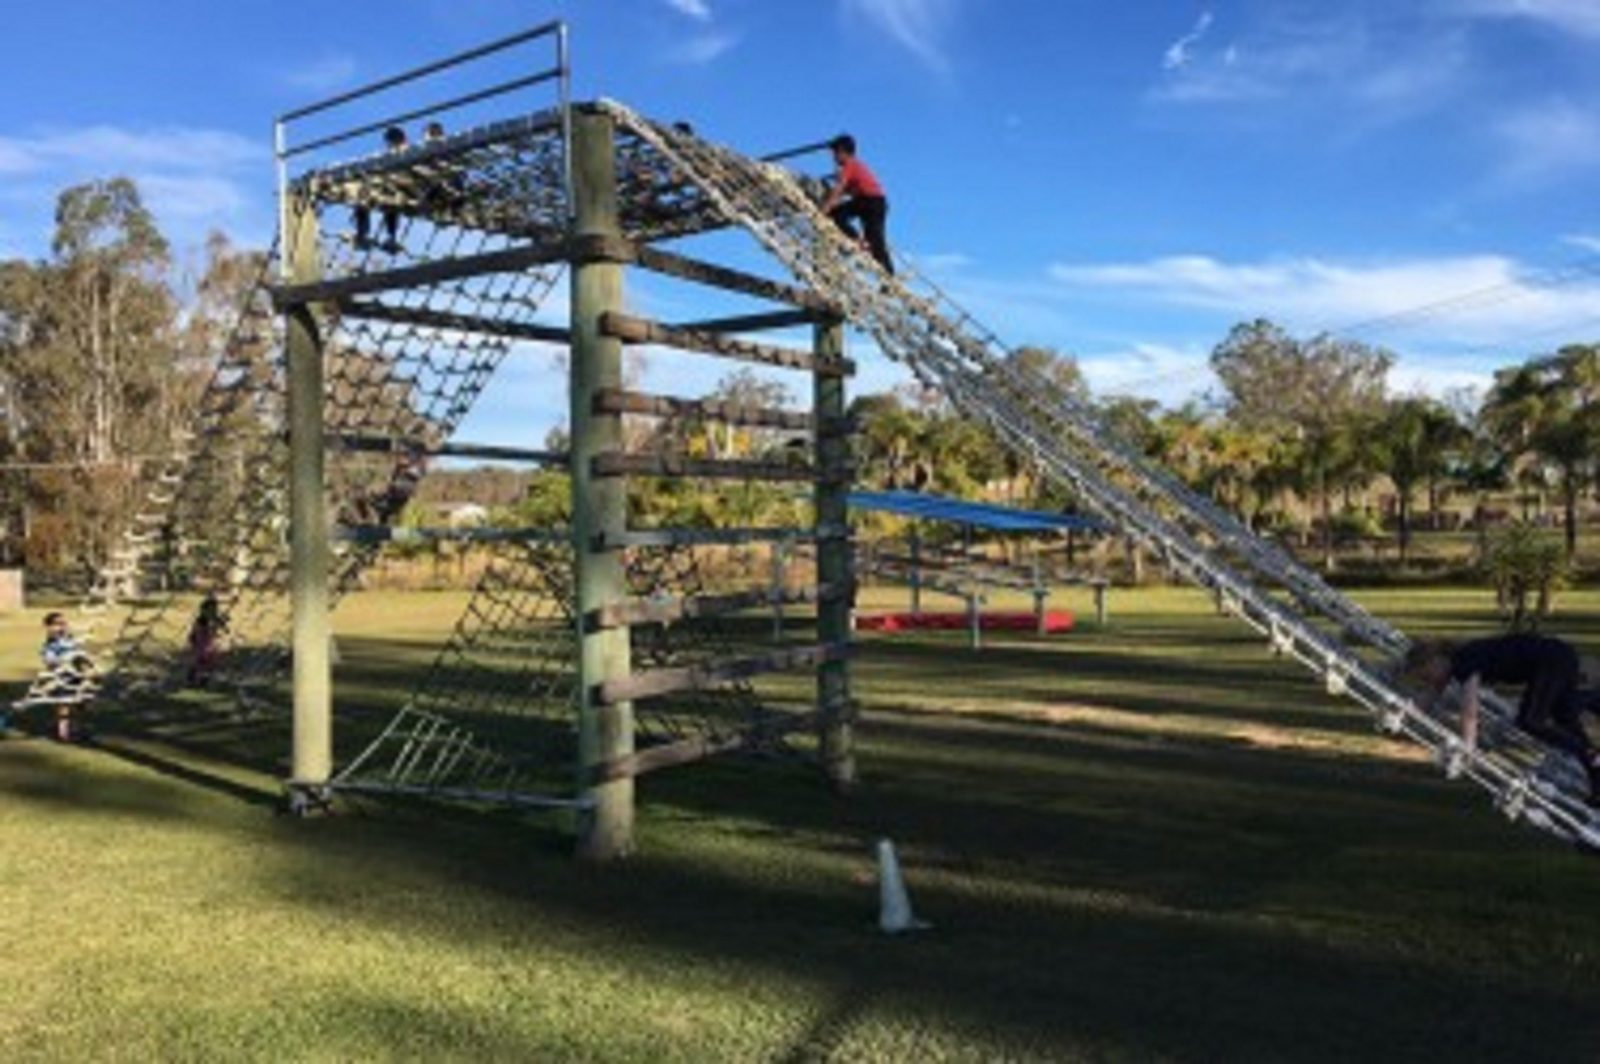 Burns Outdoor Obstacle Training